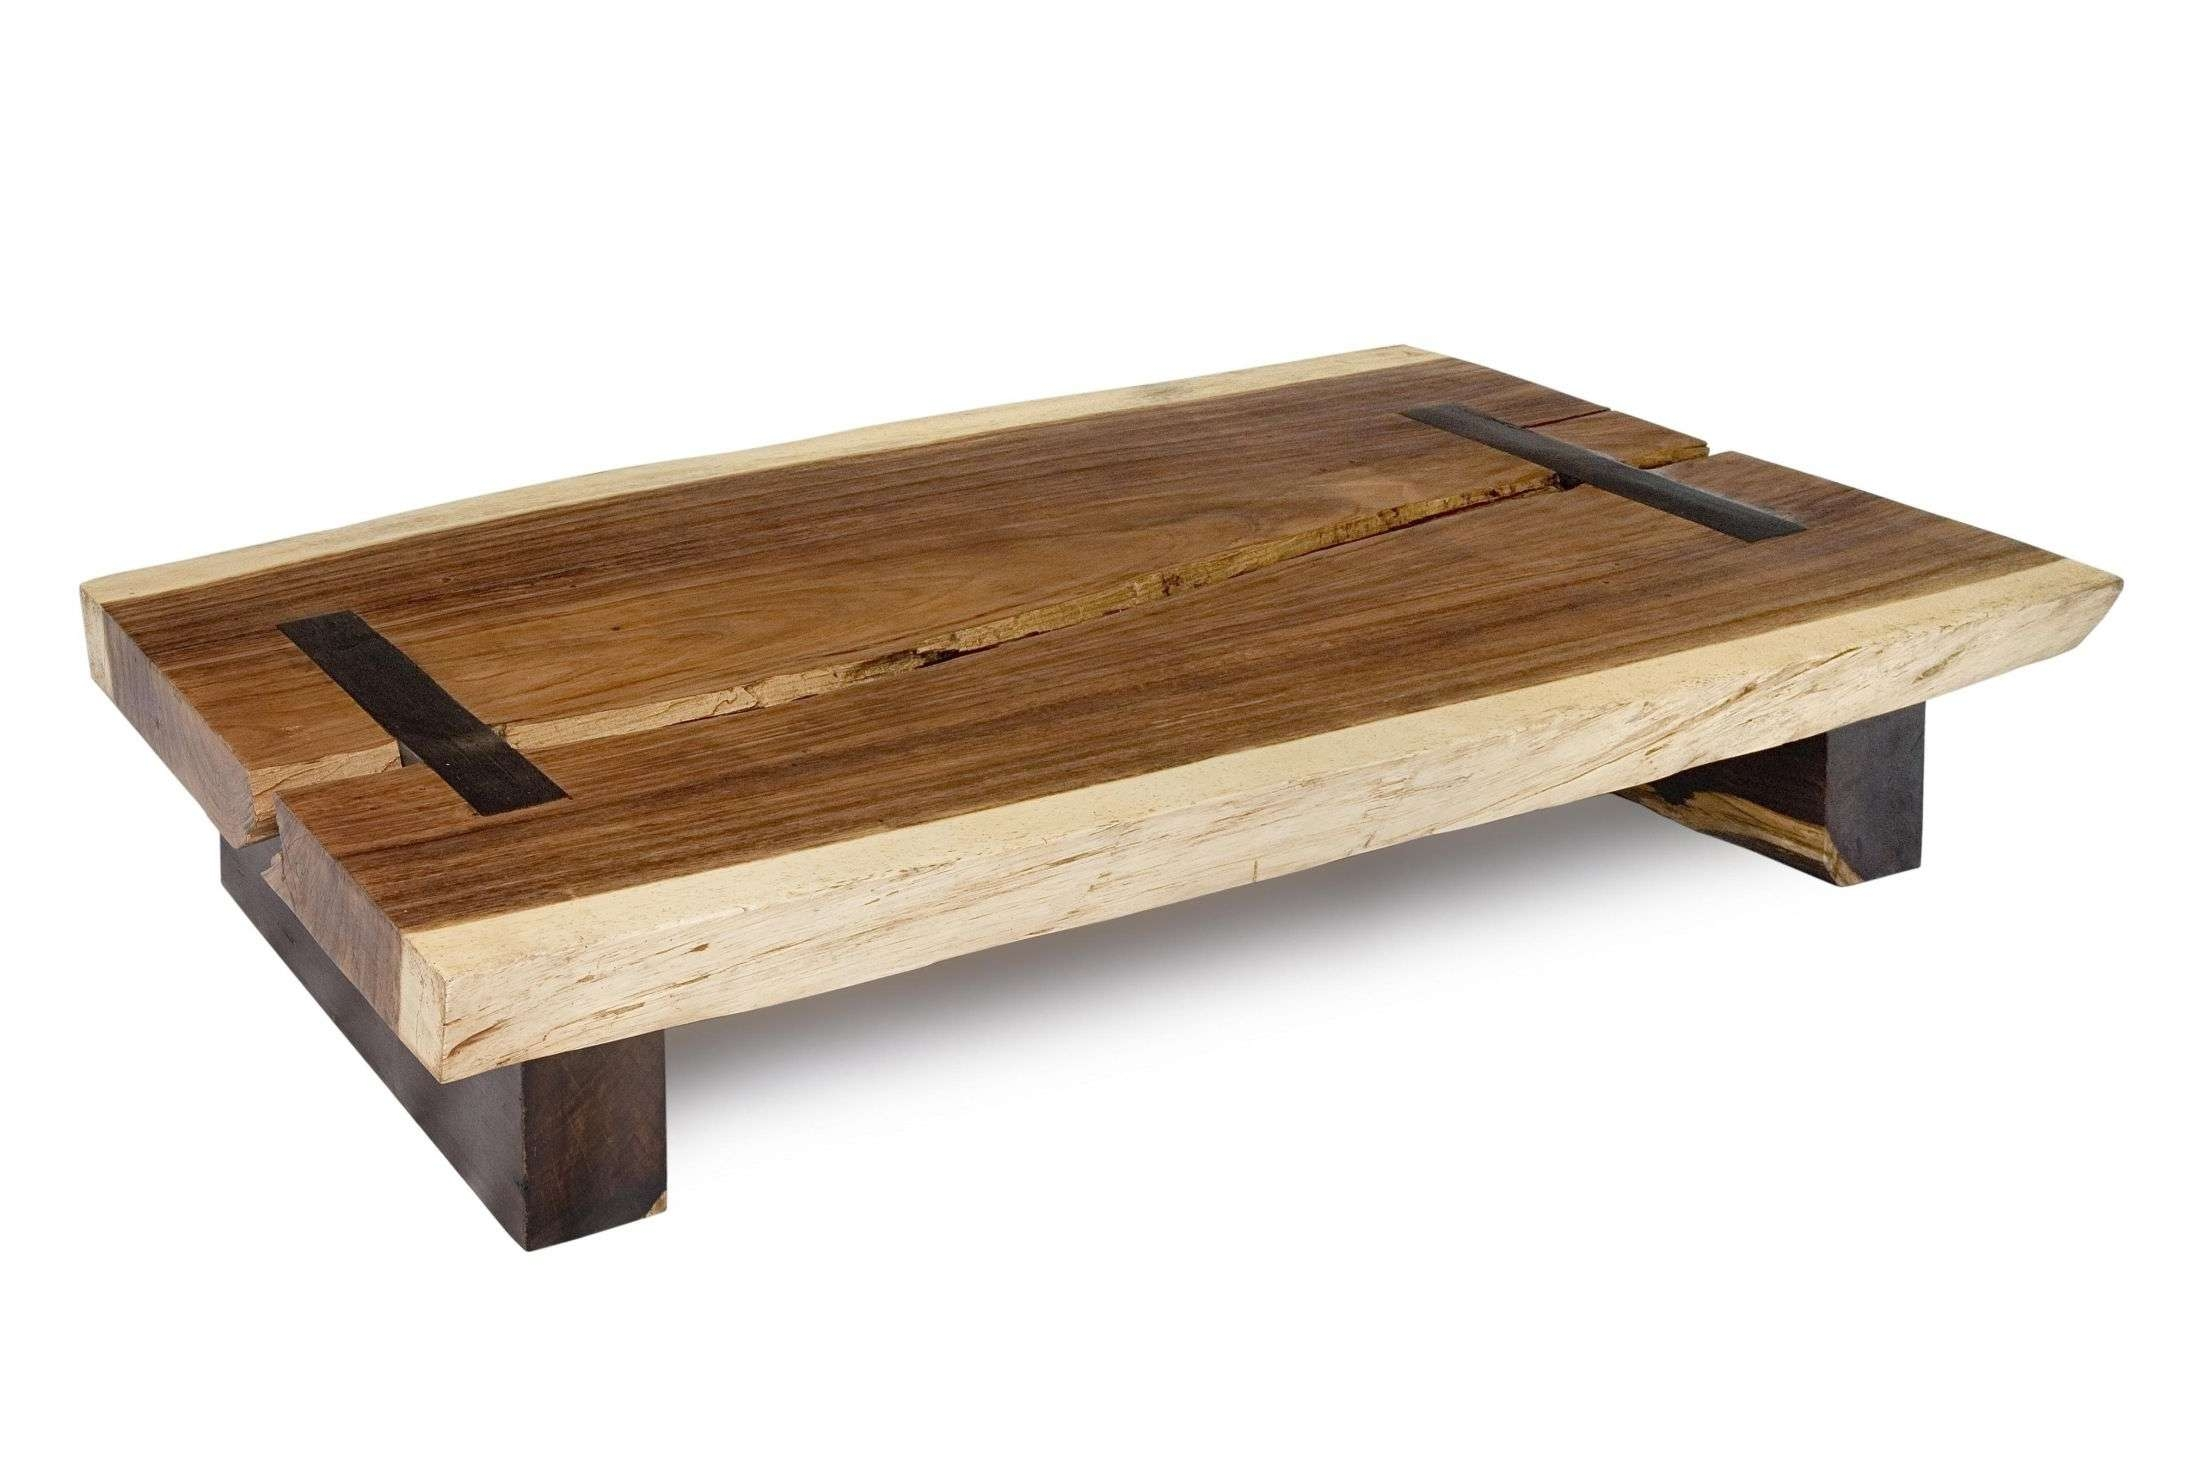 Coffee Tables : Low Square Coffee Table Wooden Round Wood Glass In Best And Newest Low Square Wooden Coffee Tables (View 10 of 20)